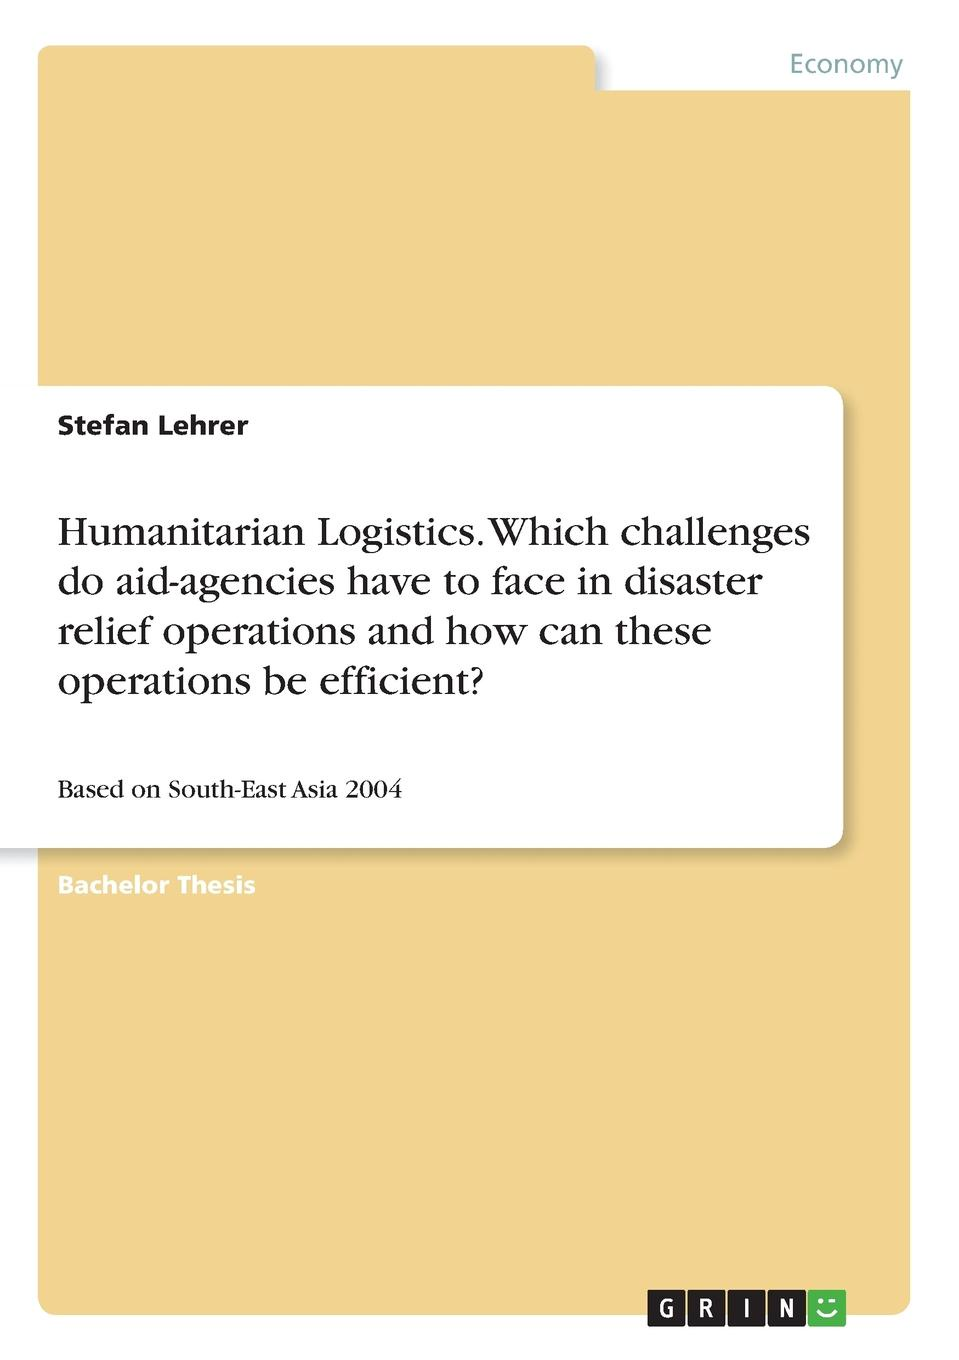 Stefan Lehrer Humanitarian Logistics. Which challenges do aid-agencies have to face in disaster relief operations and how can these operations be efficient. alice yalaoui optimization of logistics